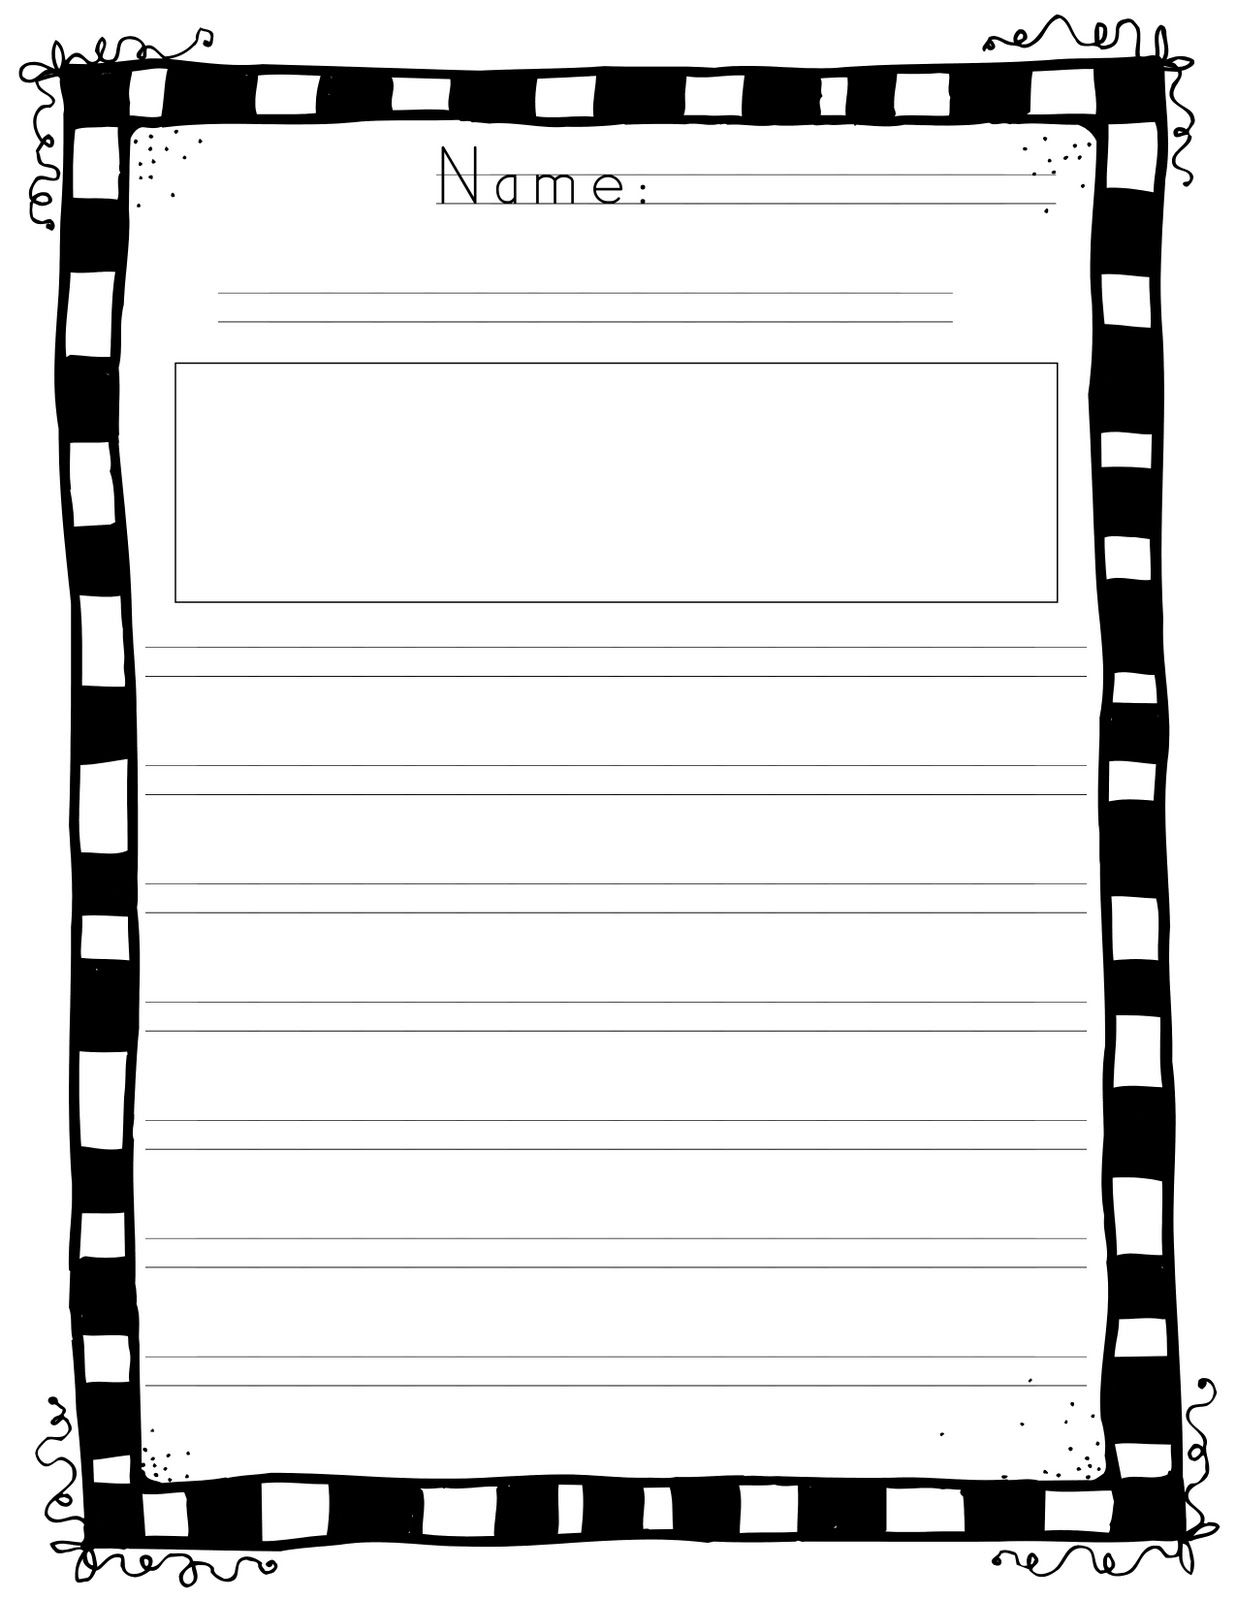 Free Handwriting Without Tears Sample Paper